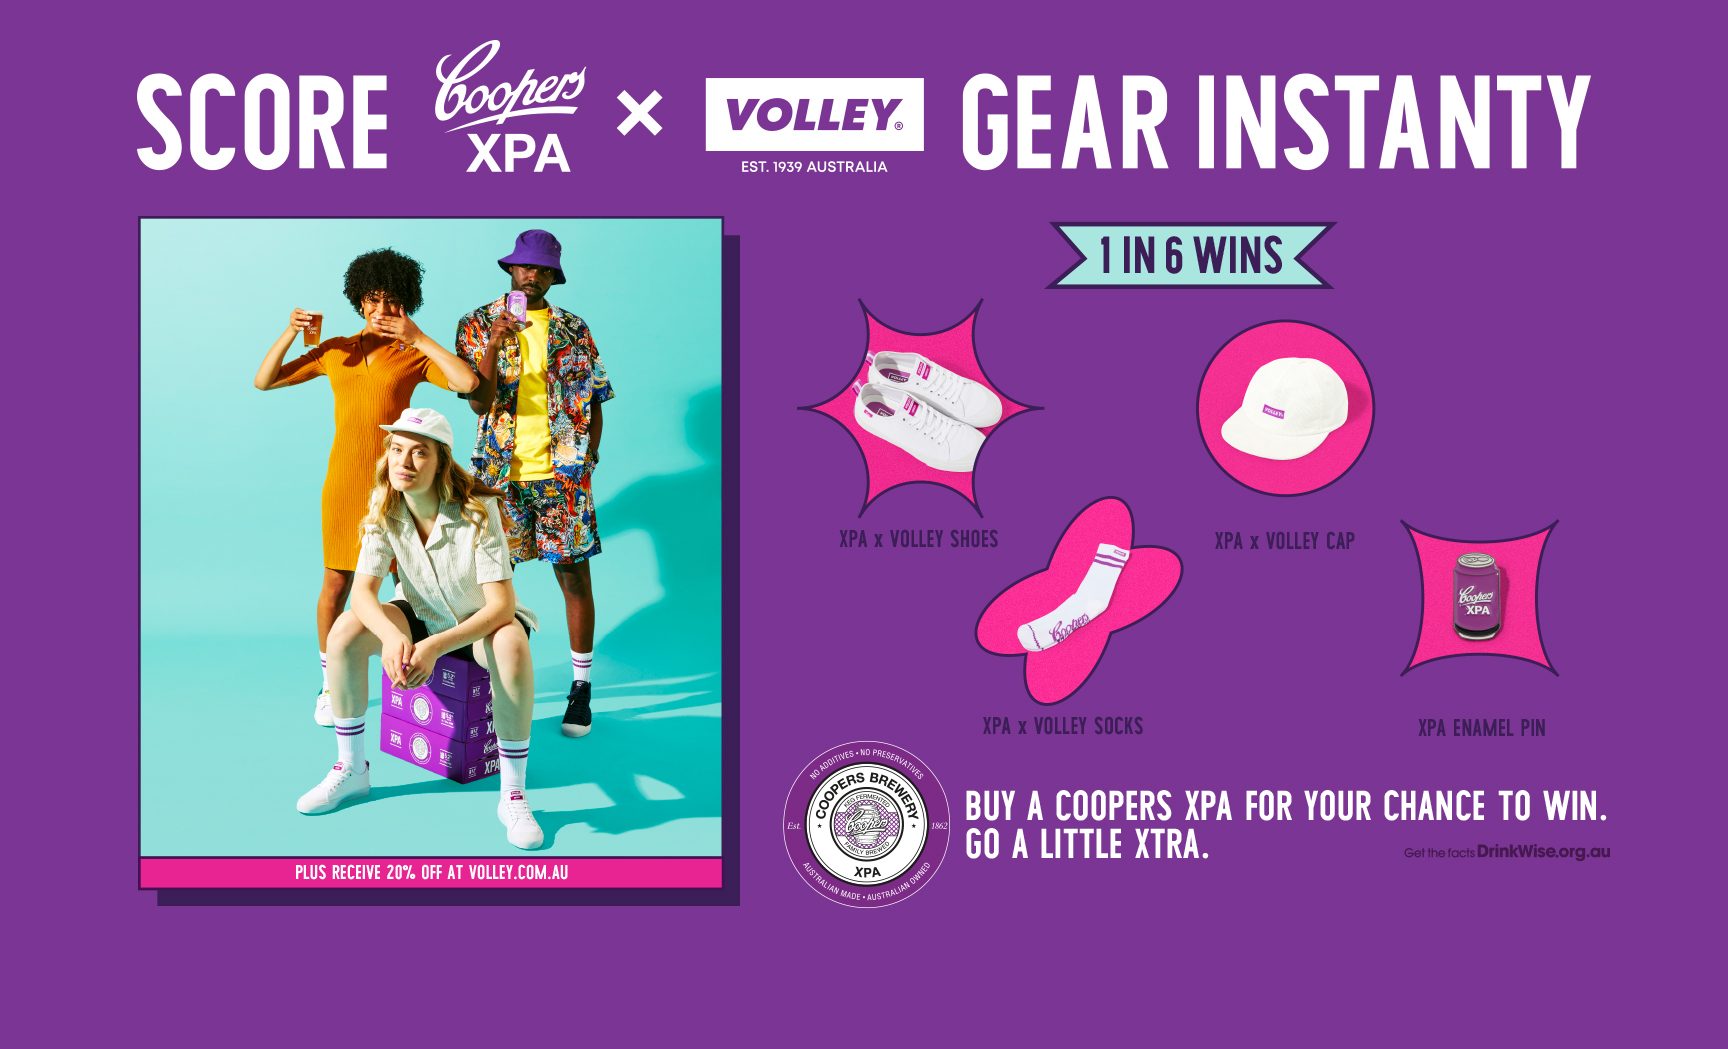 Coopers XPA Score Volley Gear Instantly 1 in 6 wins